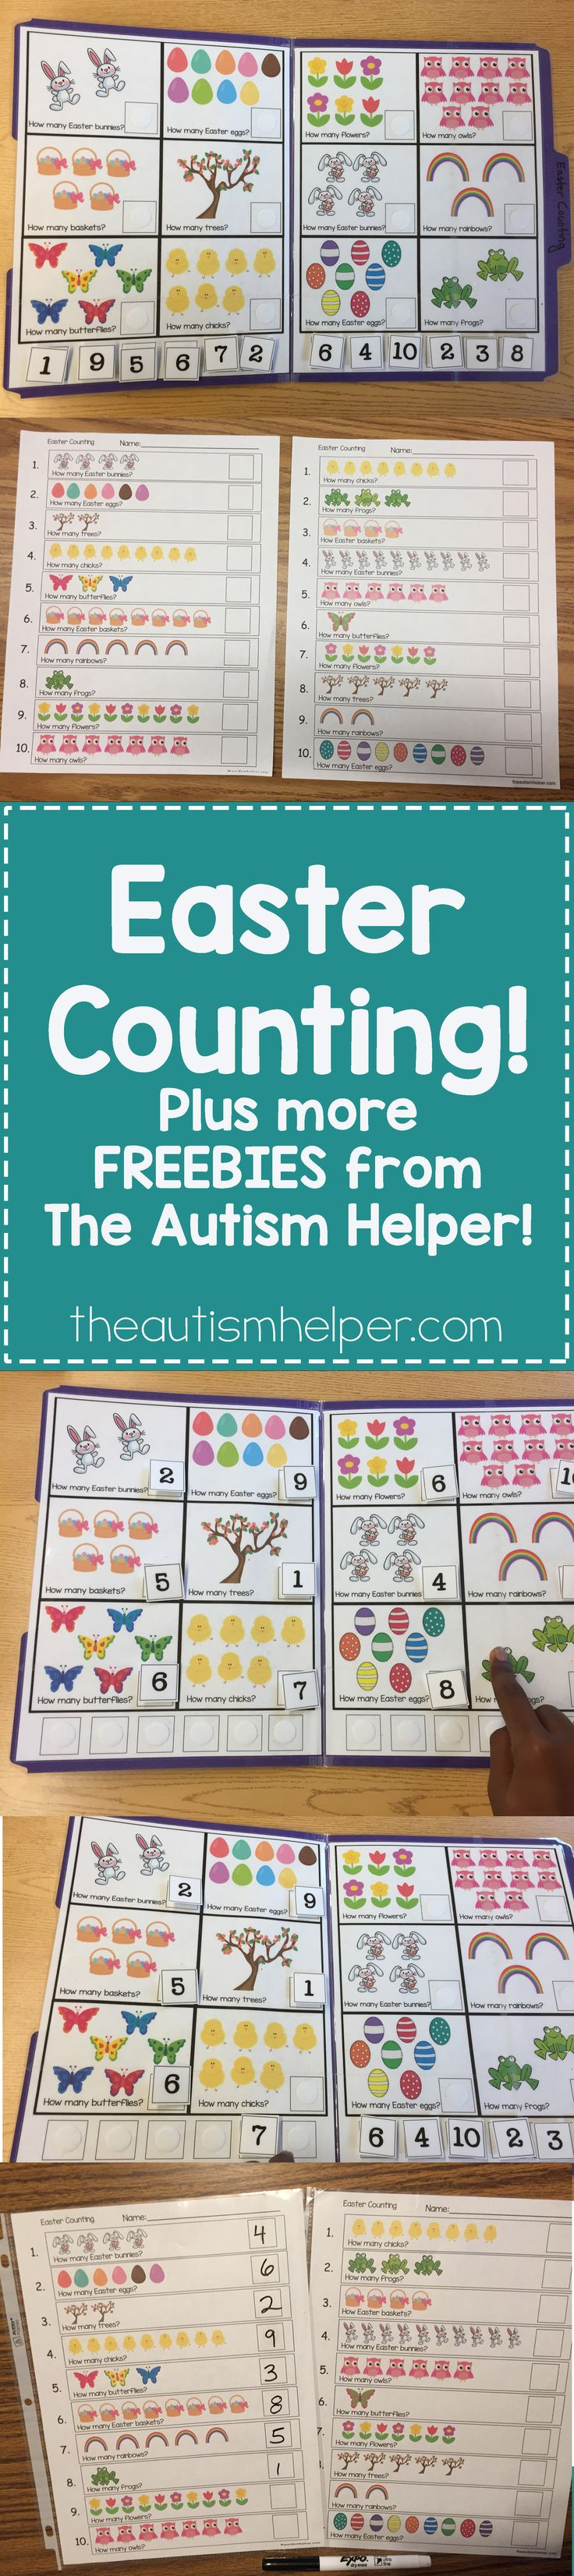 74 best Freebies from The Autism Helper images on Pinterest | Autism ...